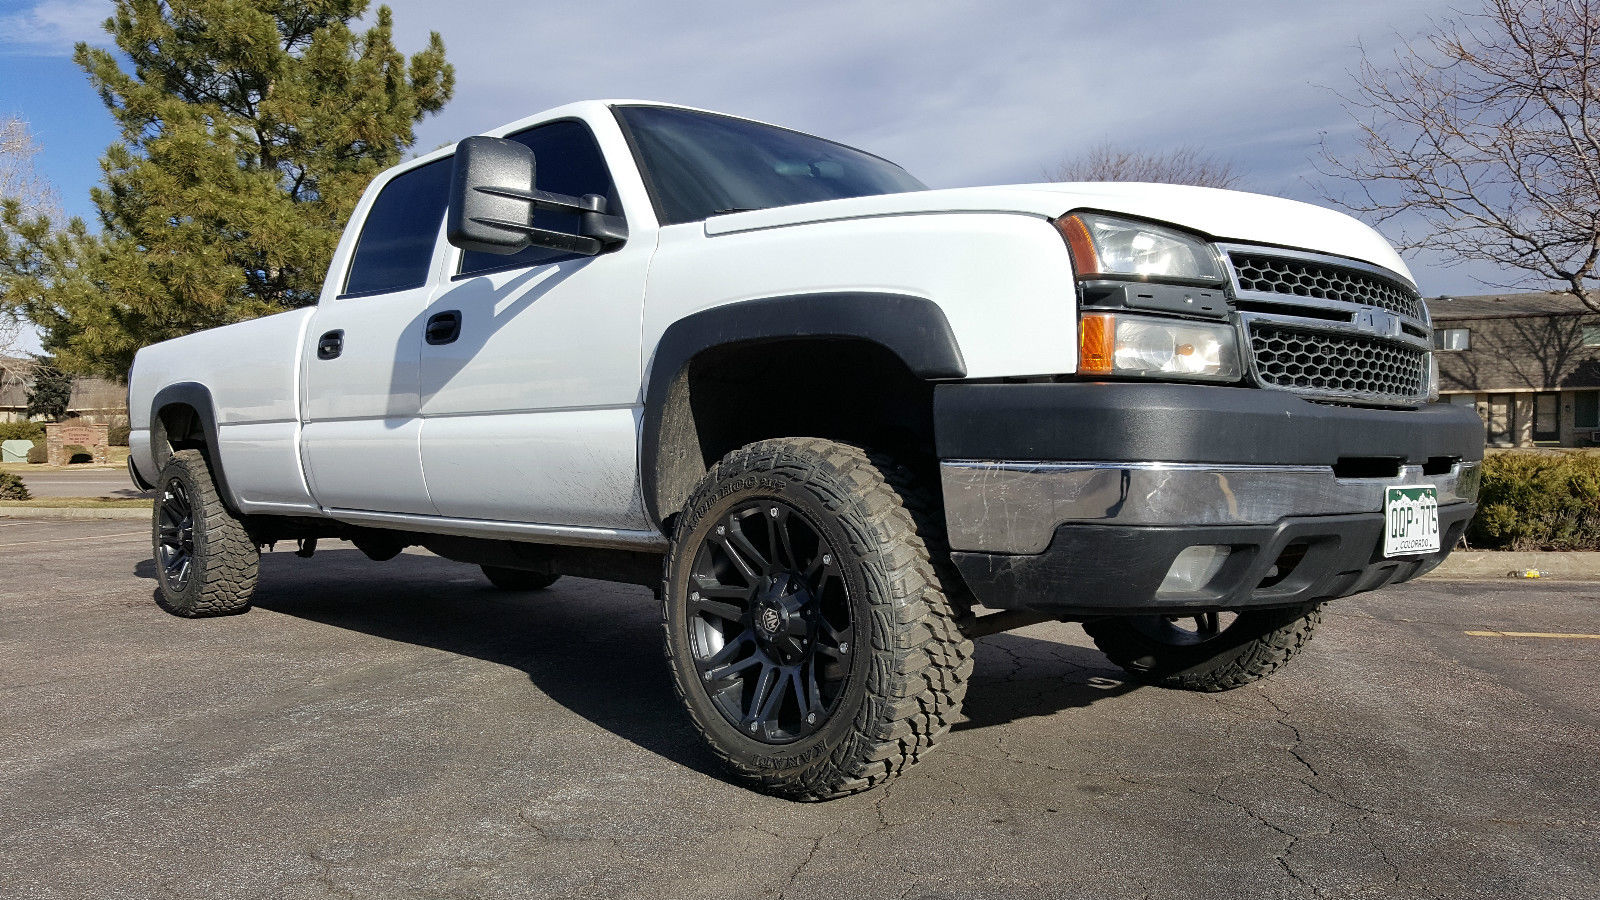 Cheap Mud Tires For Trucks >> 2006 Chevy Silverado 2500hd 6.0 Auto Crew Cab Longbed 4×4 Lift Kit for sale